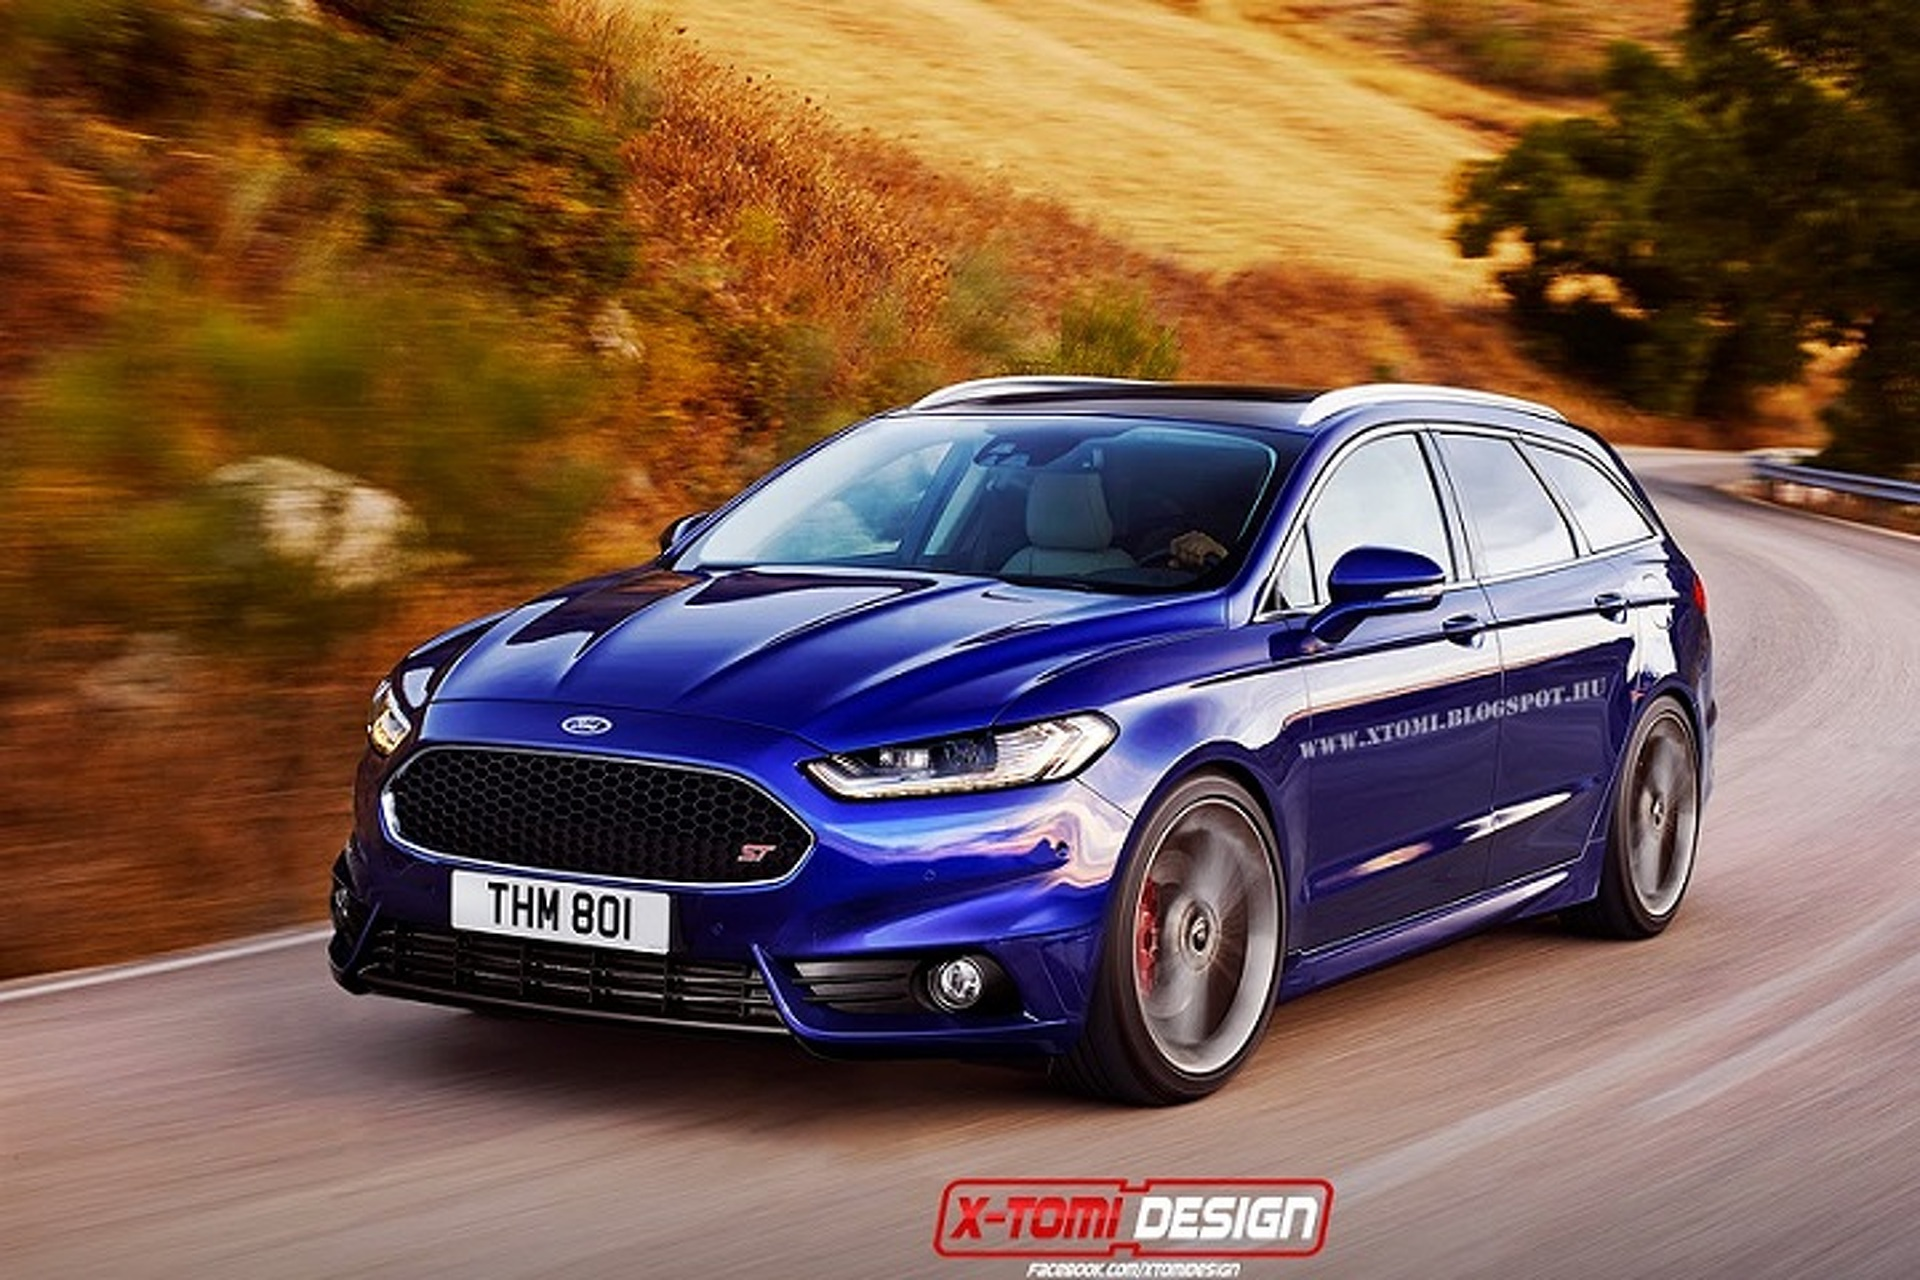 Fusion Mondeo St Rendering Makes Us Drool